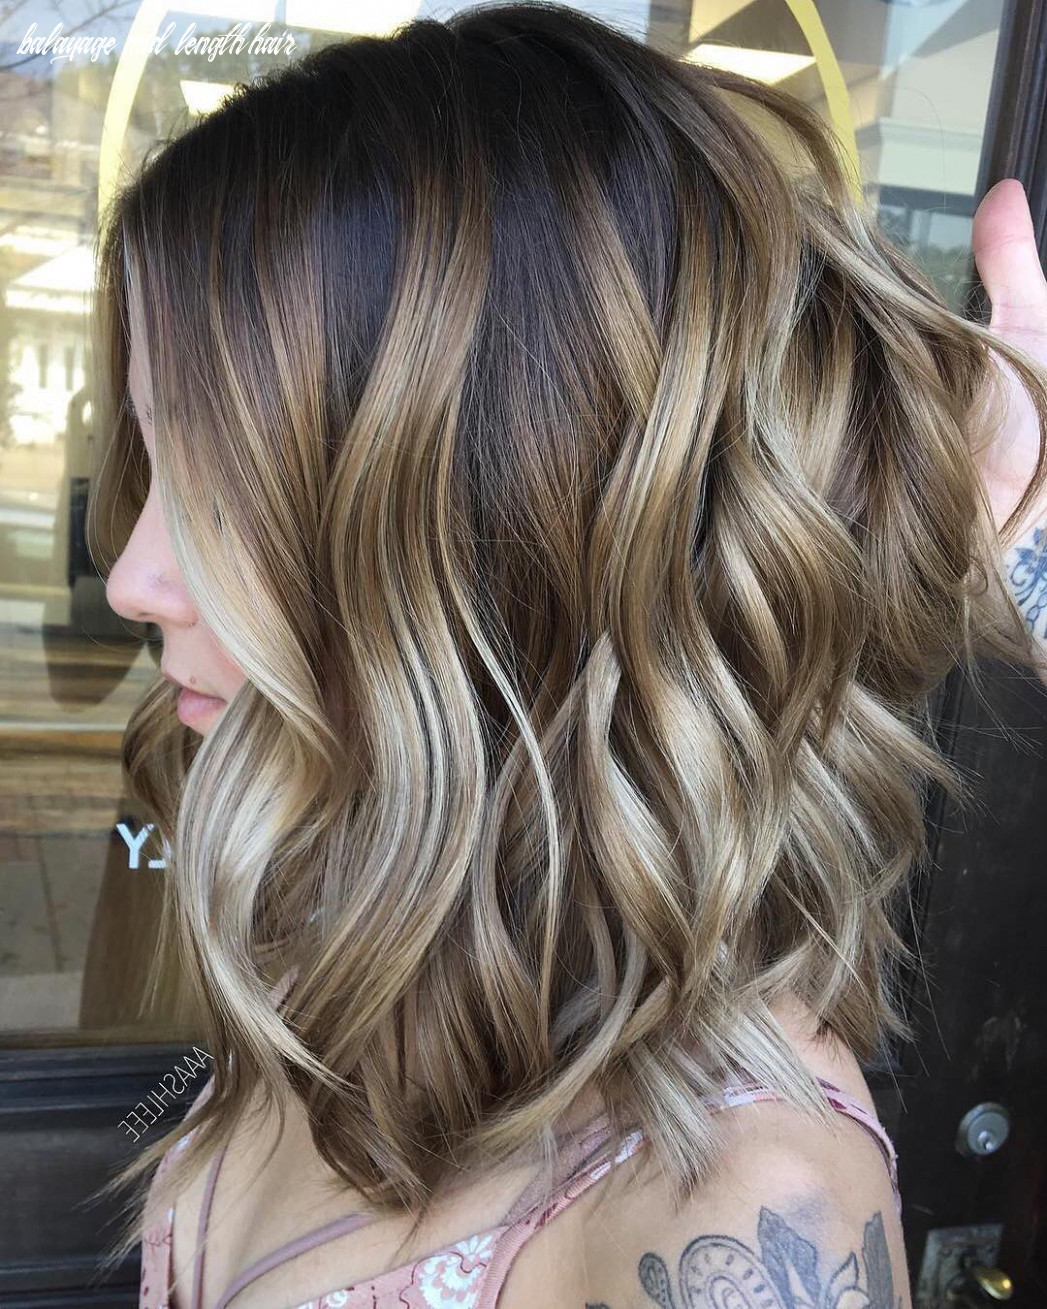 11 ombre balayage hairstyles for medium length hair, hair color 11 balayage mid length hair